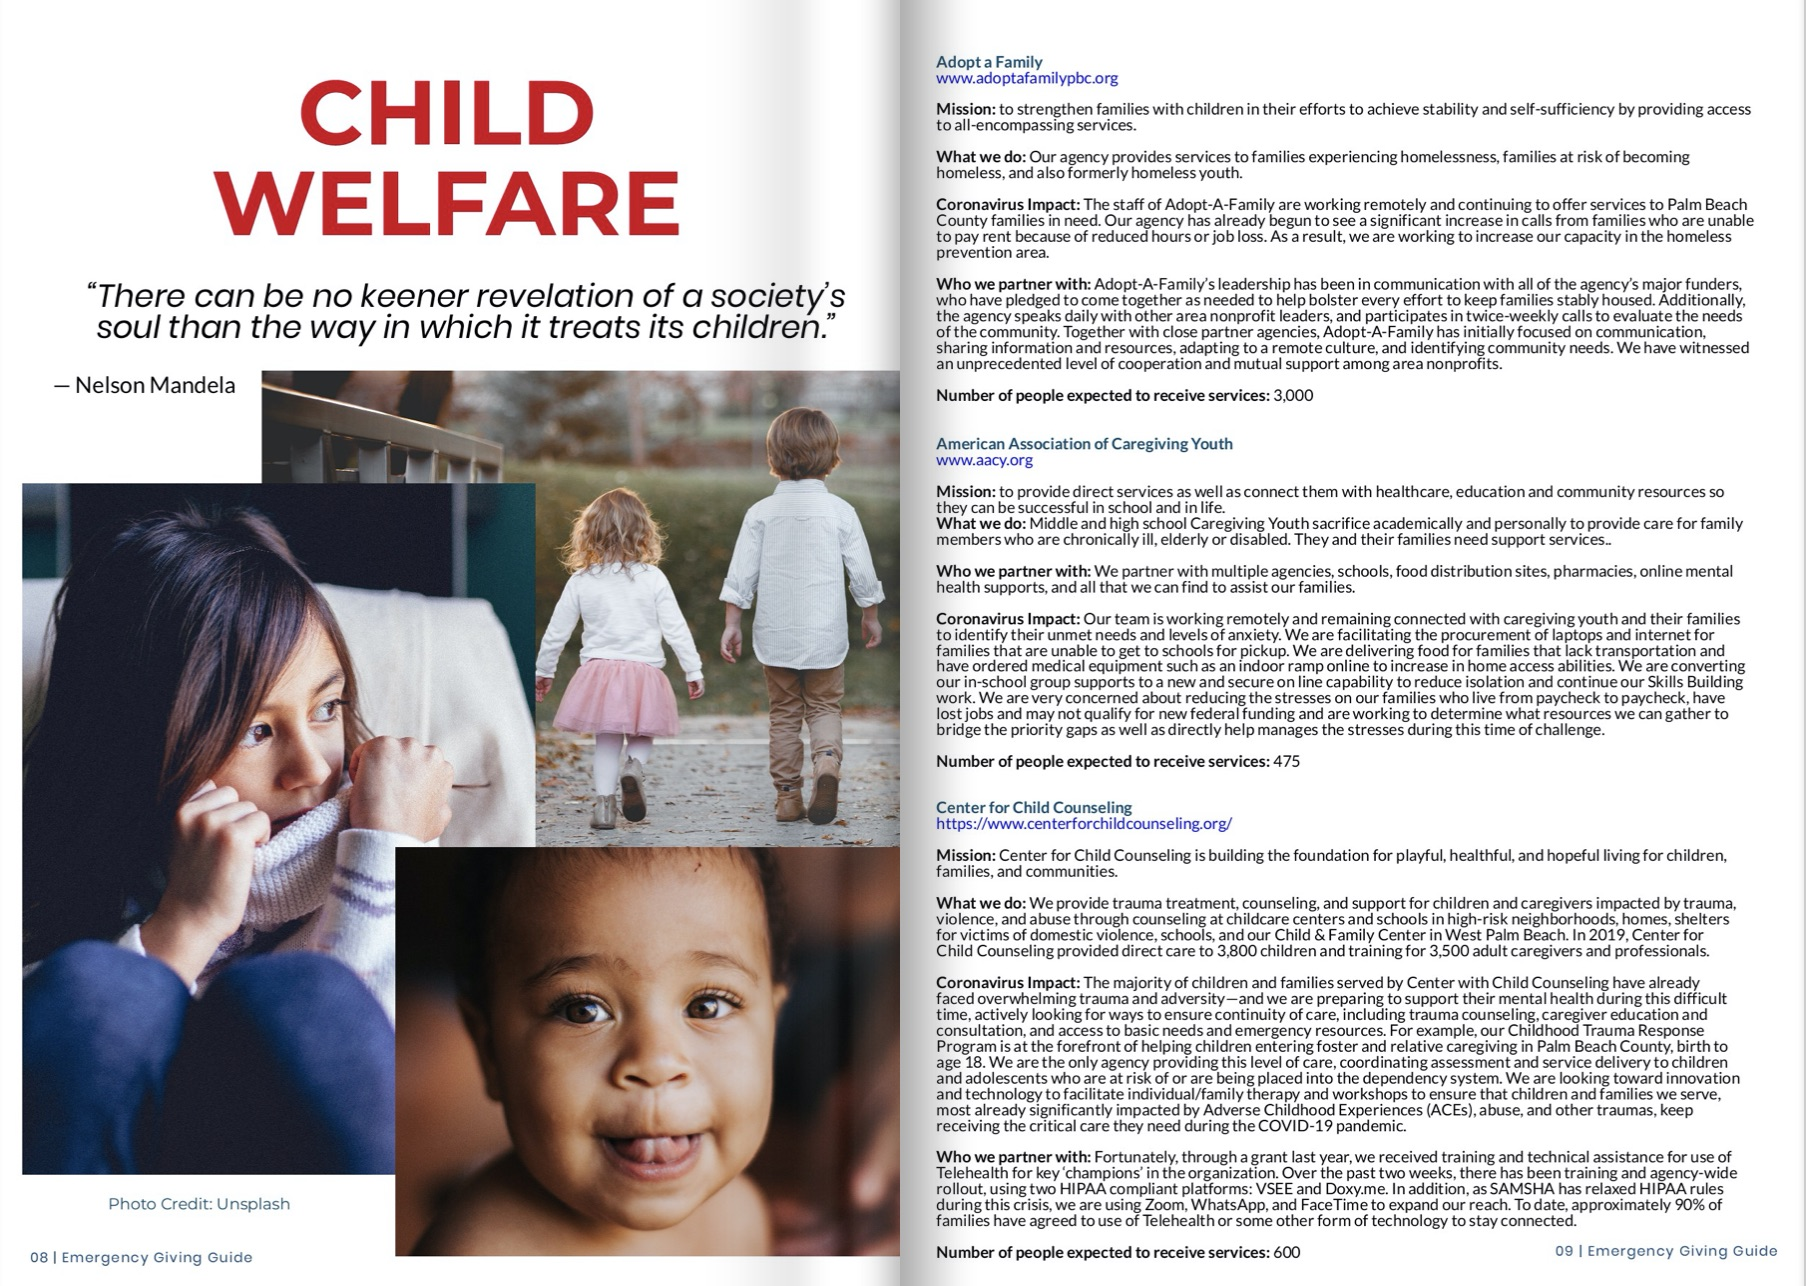 Emergency Guide - Child Welfare